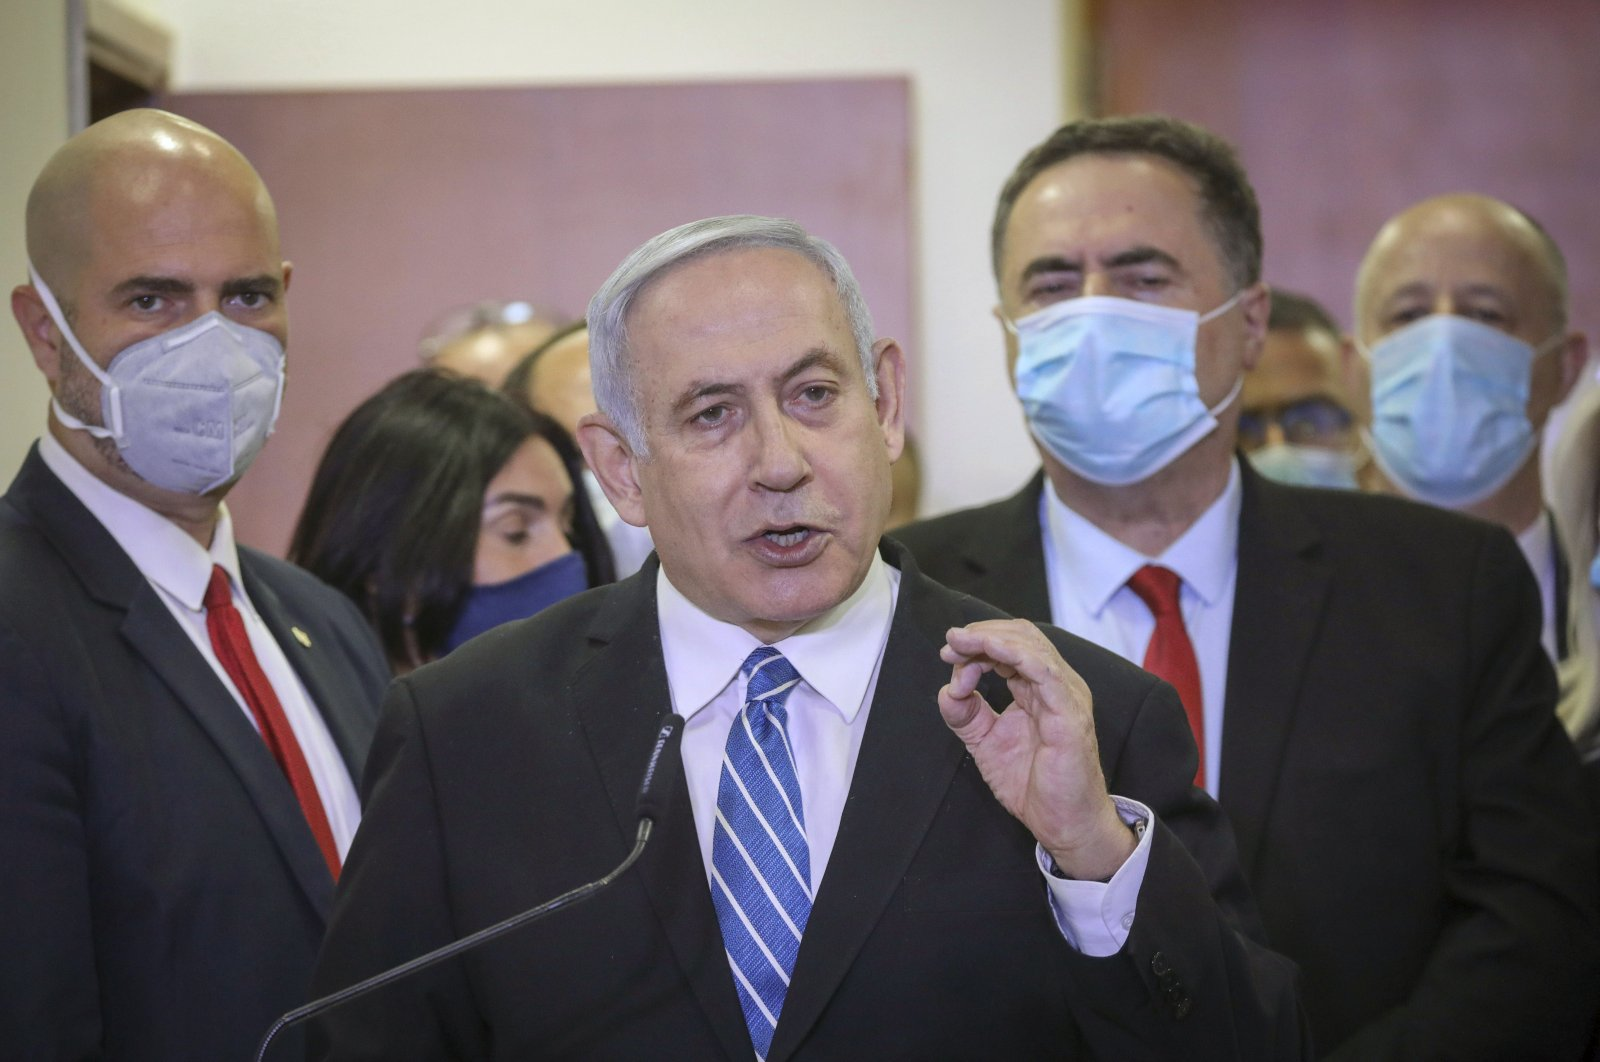 Israeli Prime Minister Benjamin Netanyahu accompanied by members of his Likud Party in masks delivers a statement before entering the district courthouse, Jerusalem, May 24, 2020. (AP Photo)